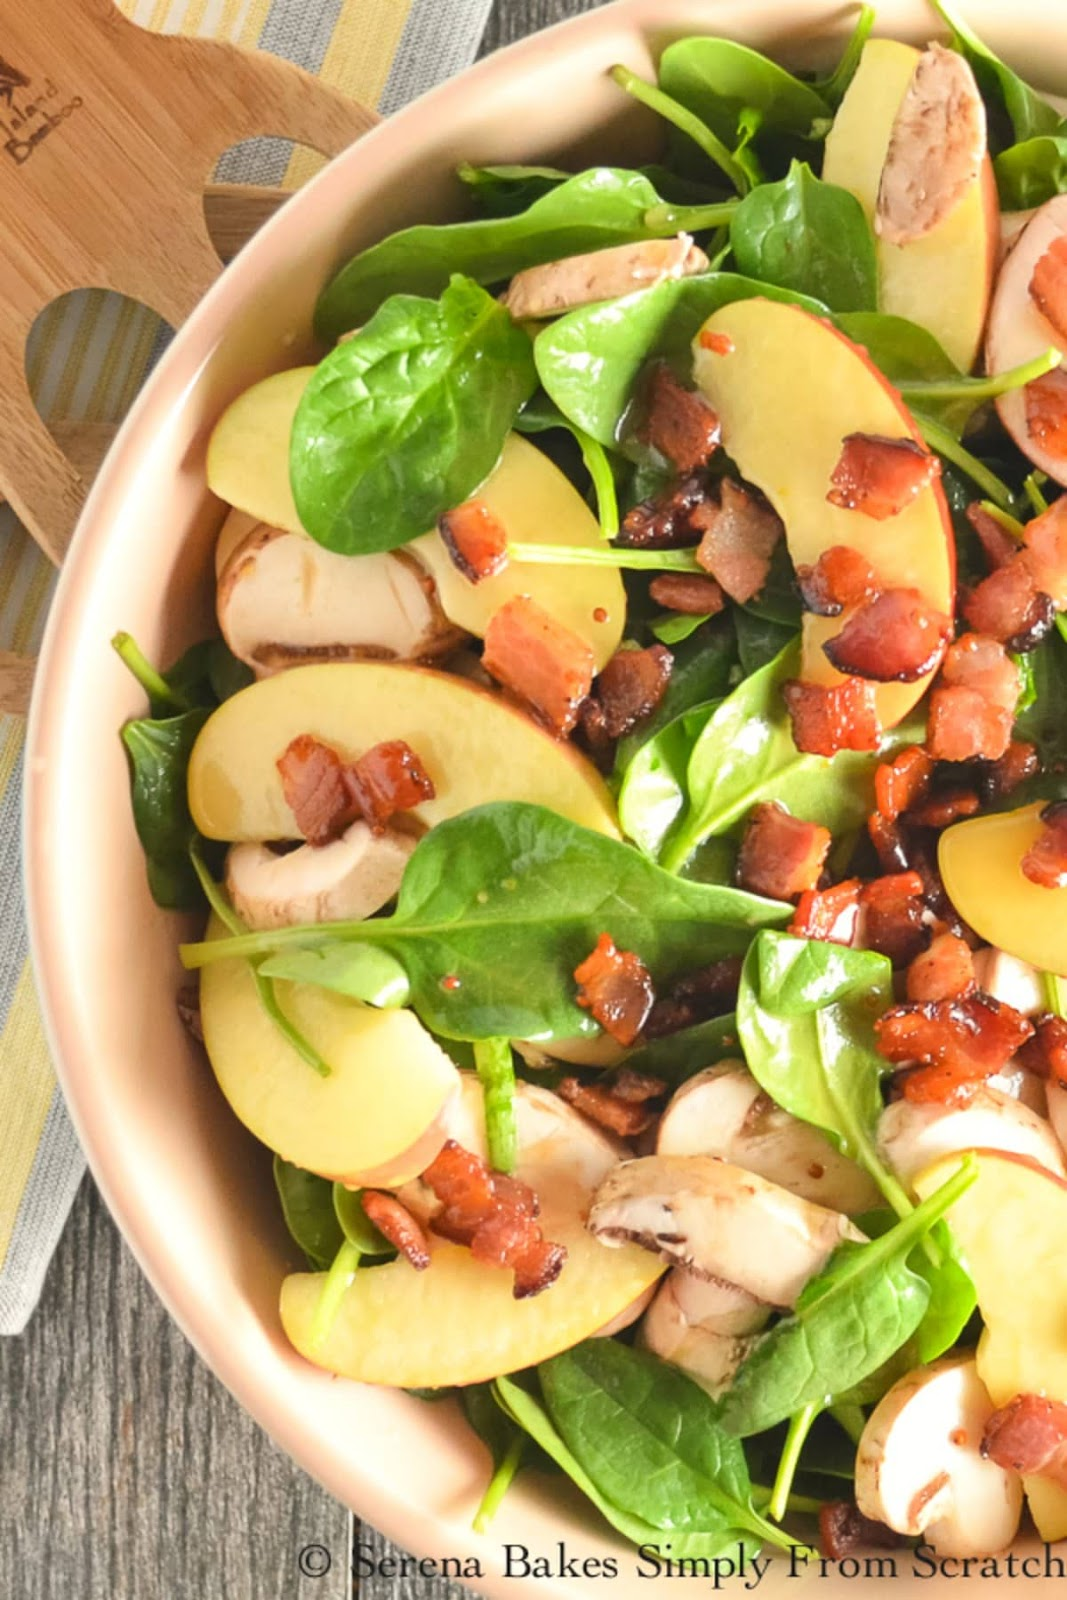 Spinach Salad with Bacon and Apples drizzled with Homemade Honey Mustard Dressing recipe is a favorite salad from Serena Bakes Simply From Scratch.